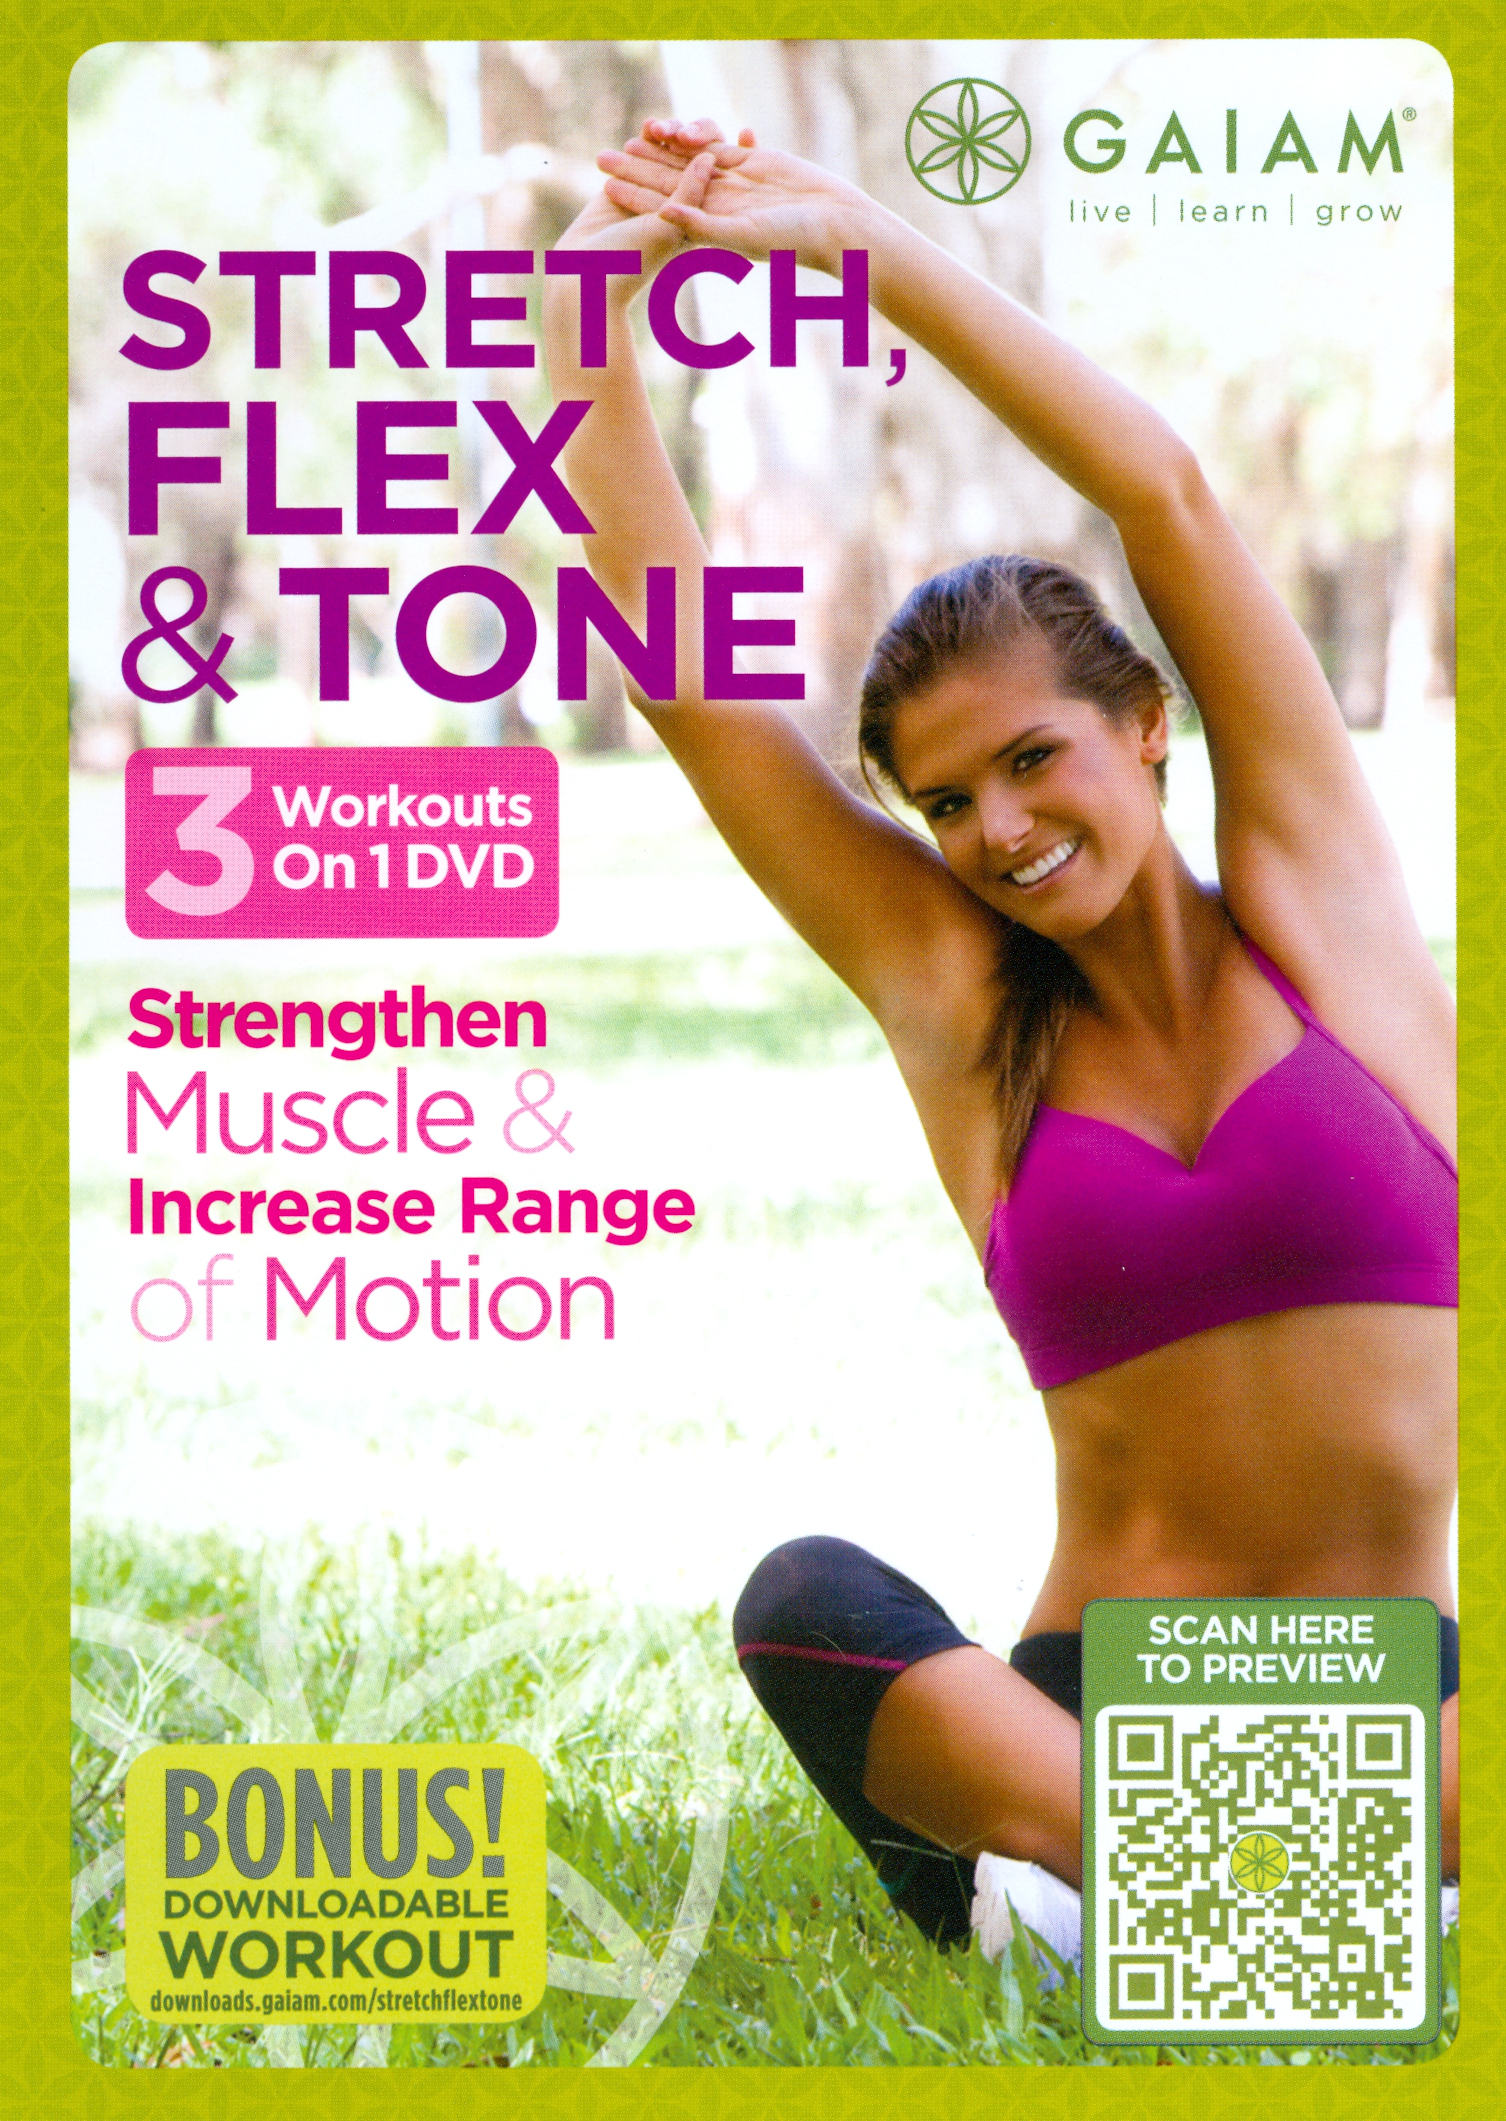 Stretch, Flex & Tone